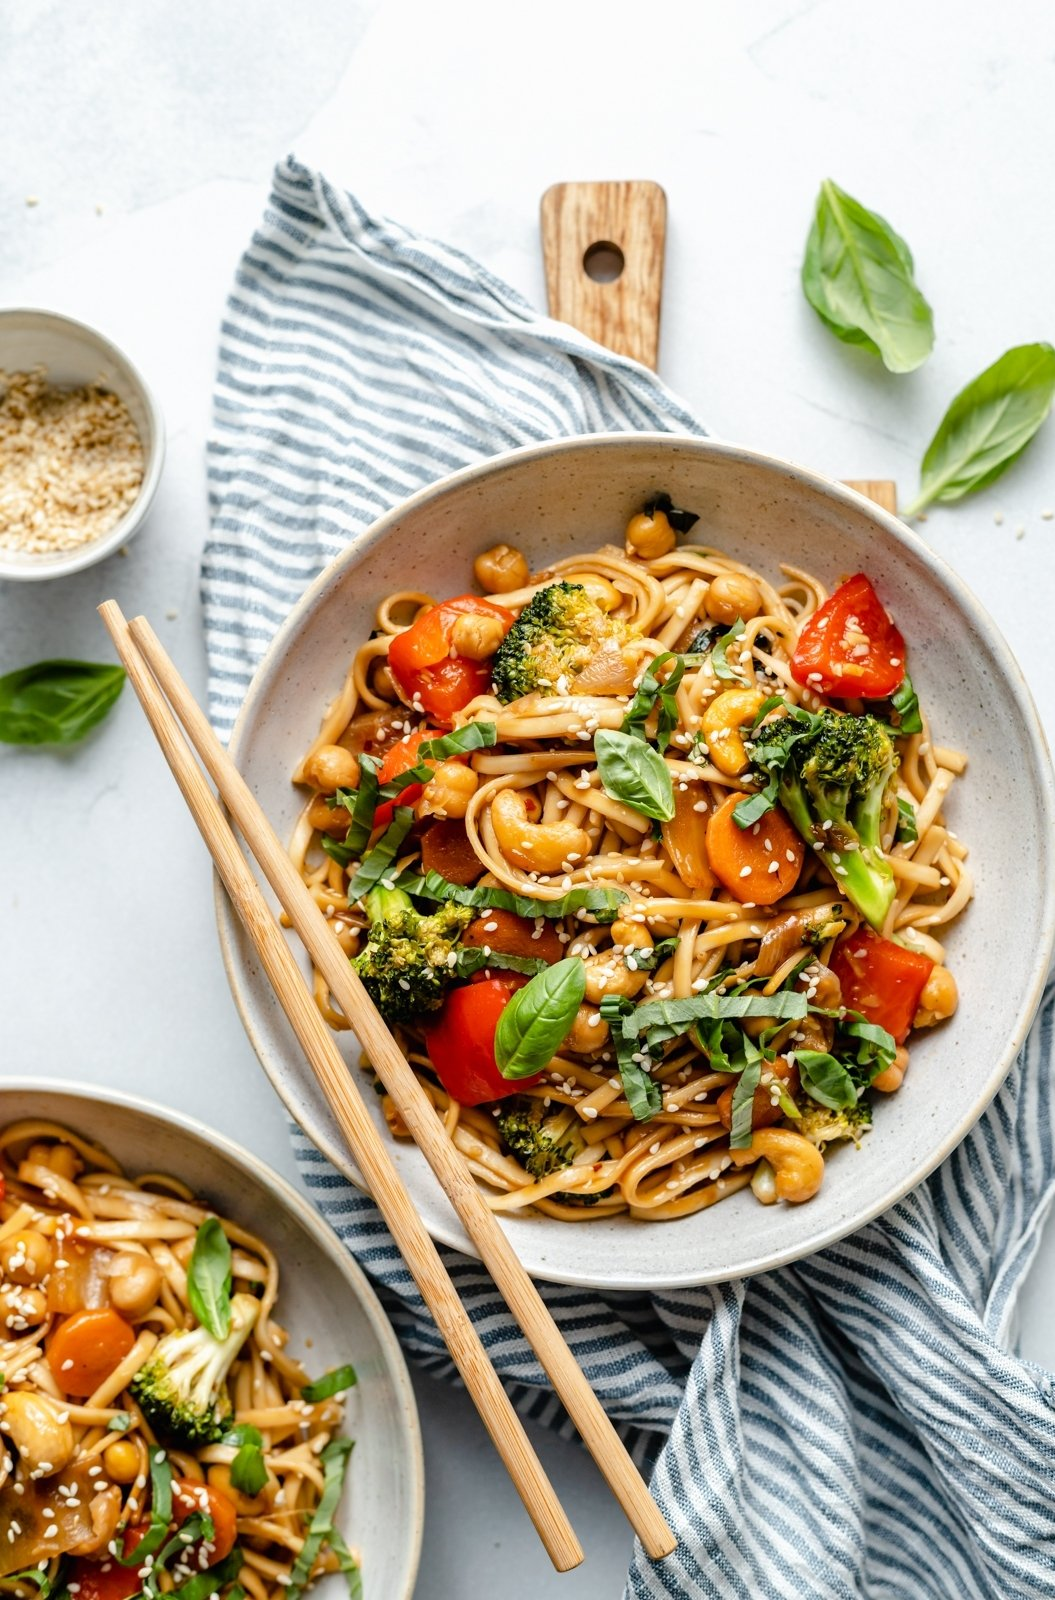 easy vegan stir fry noodles in a bowl with chopsticks